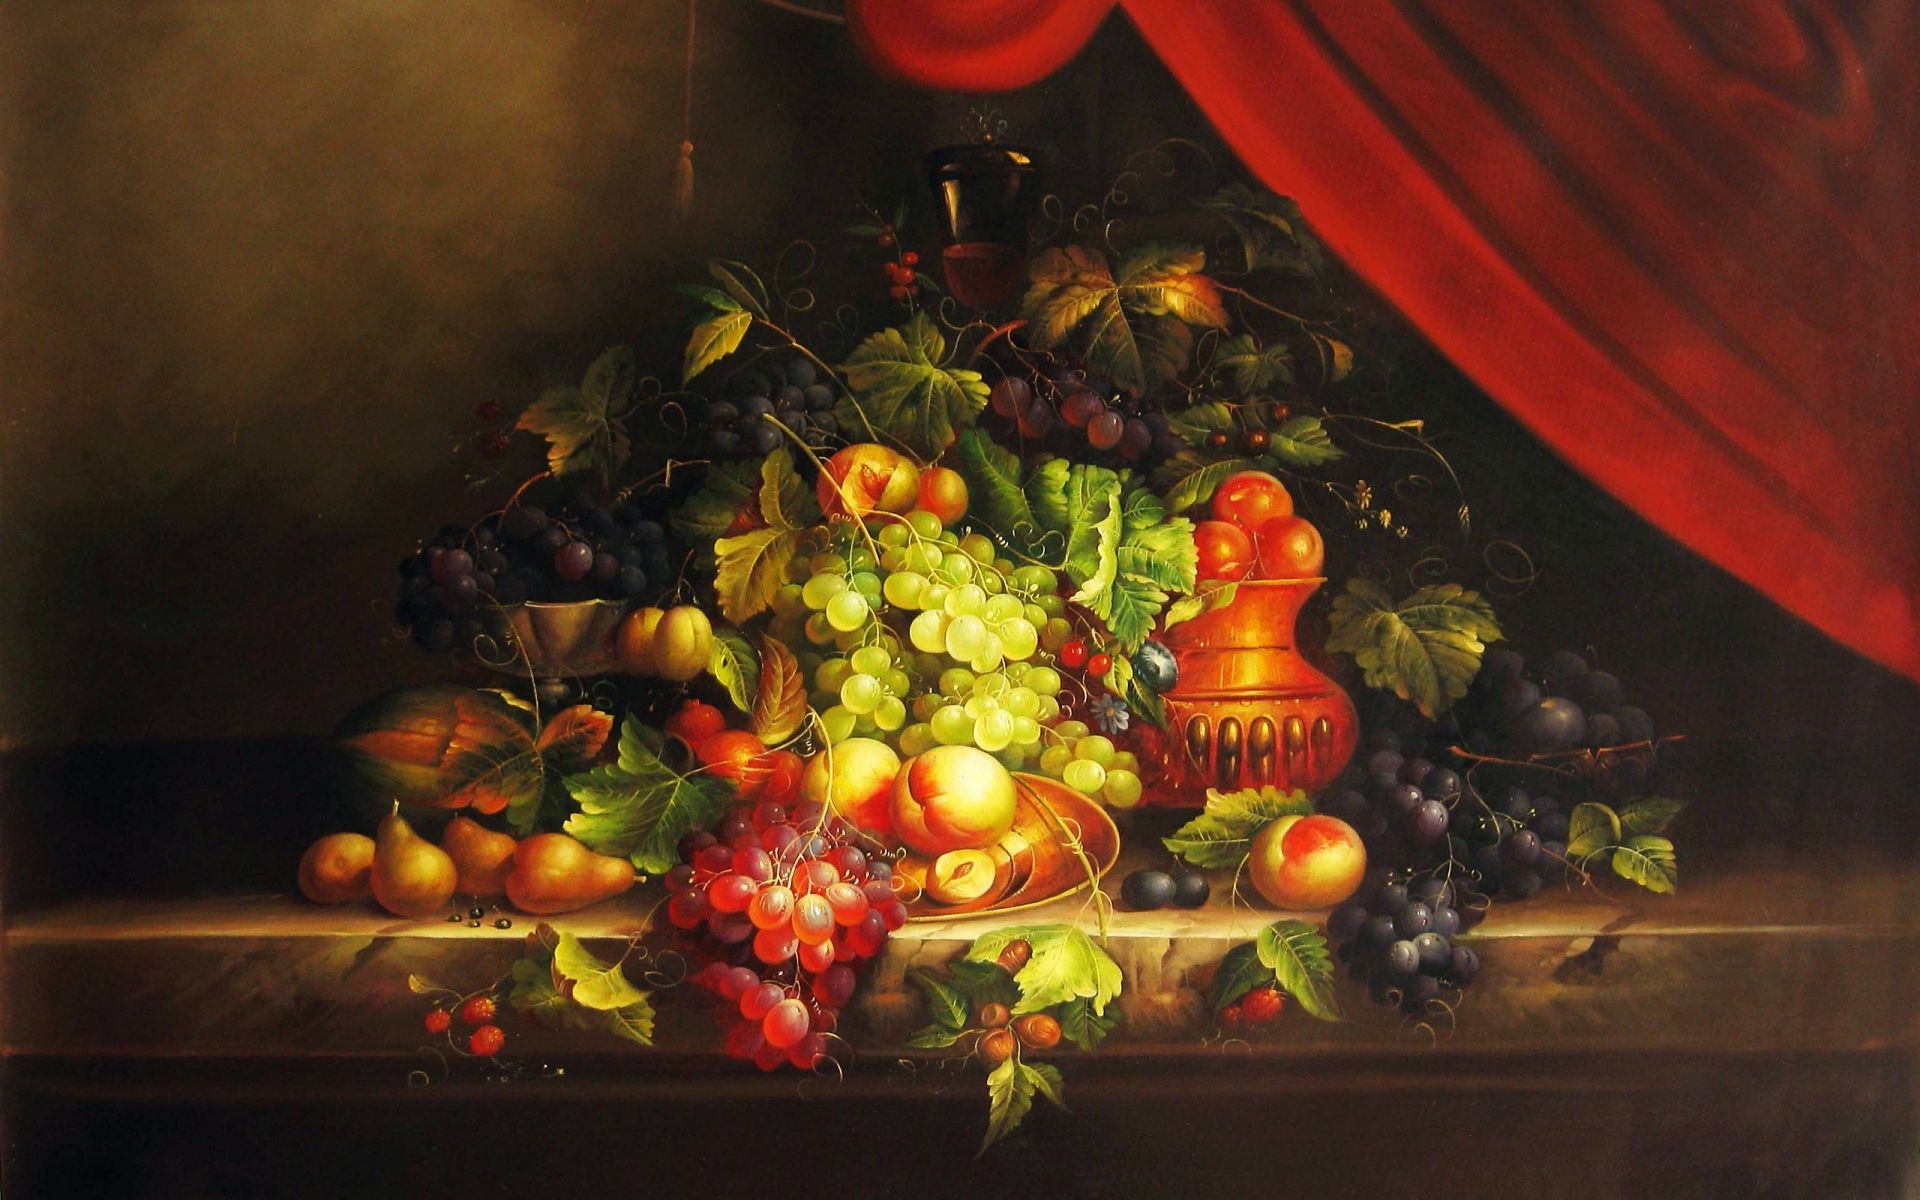 interior still life food light fruit decoration festival grow candle